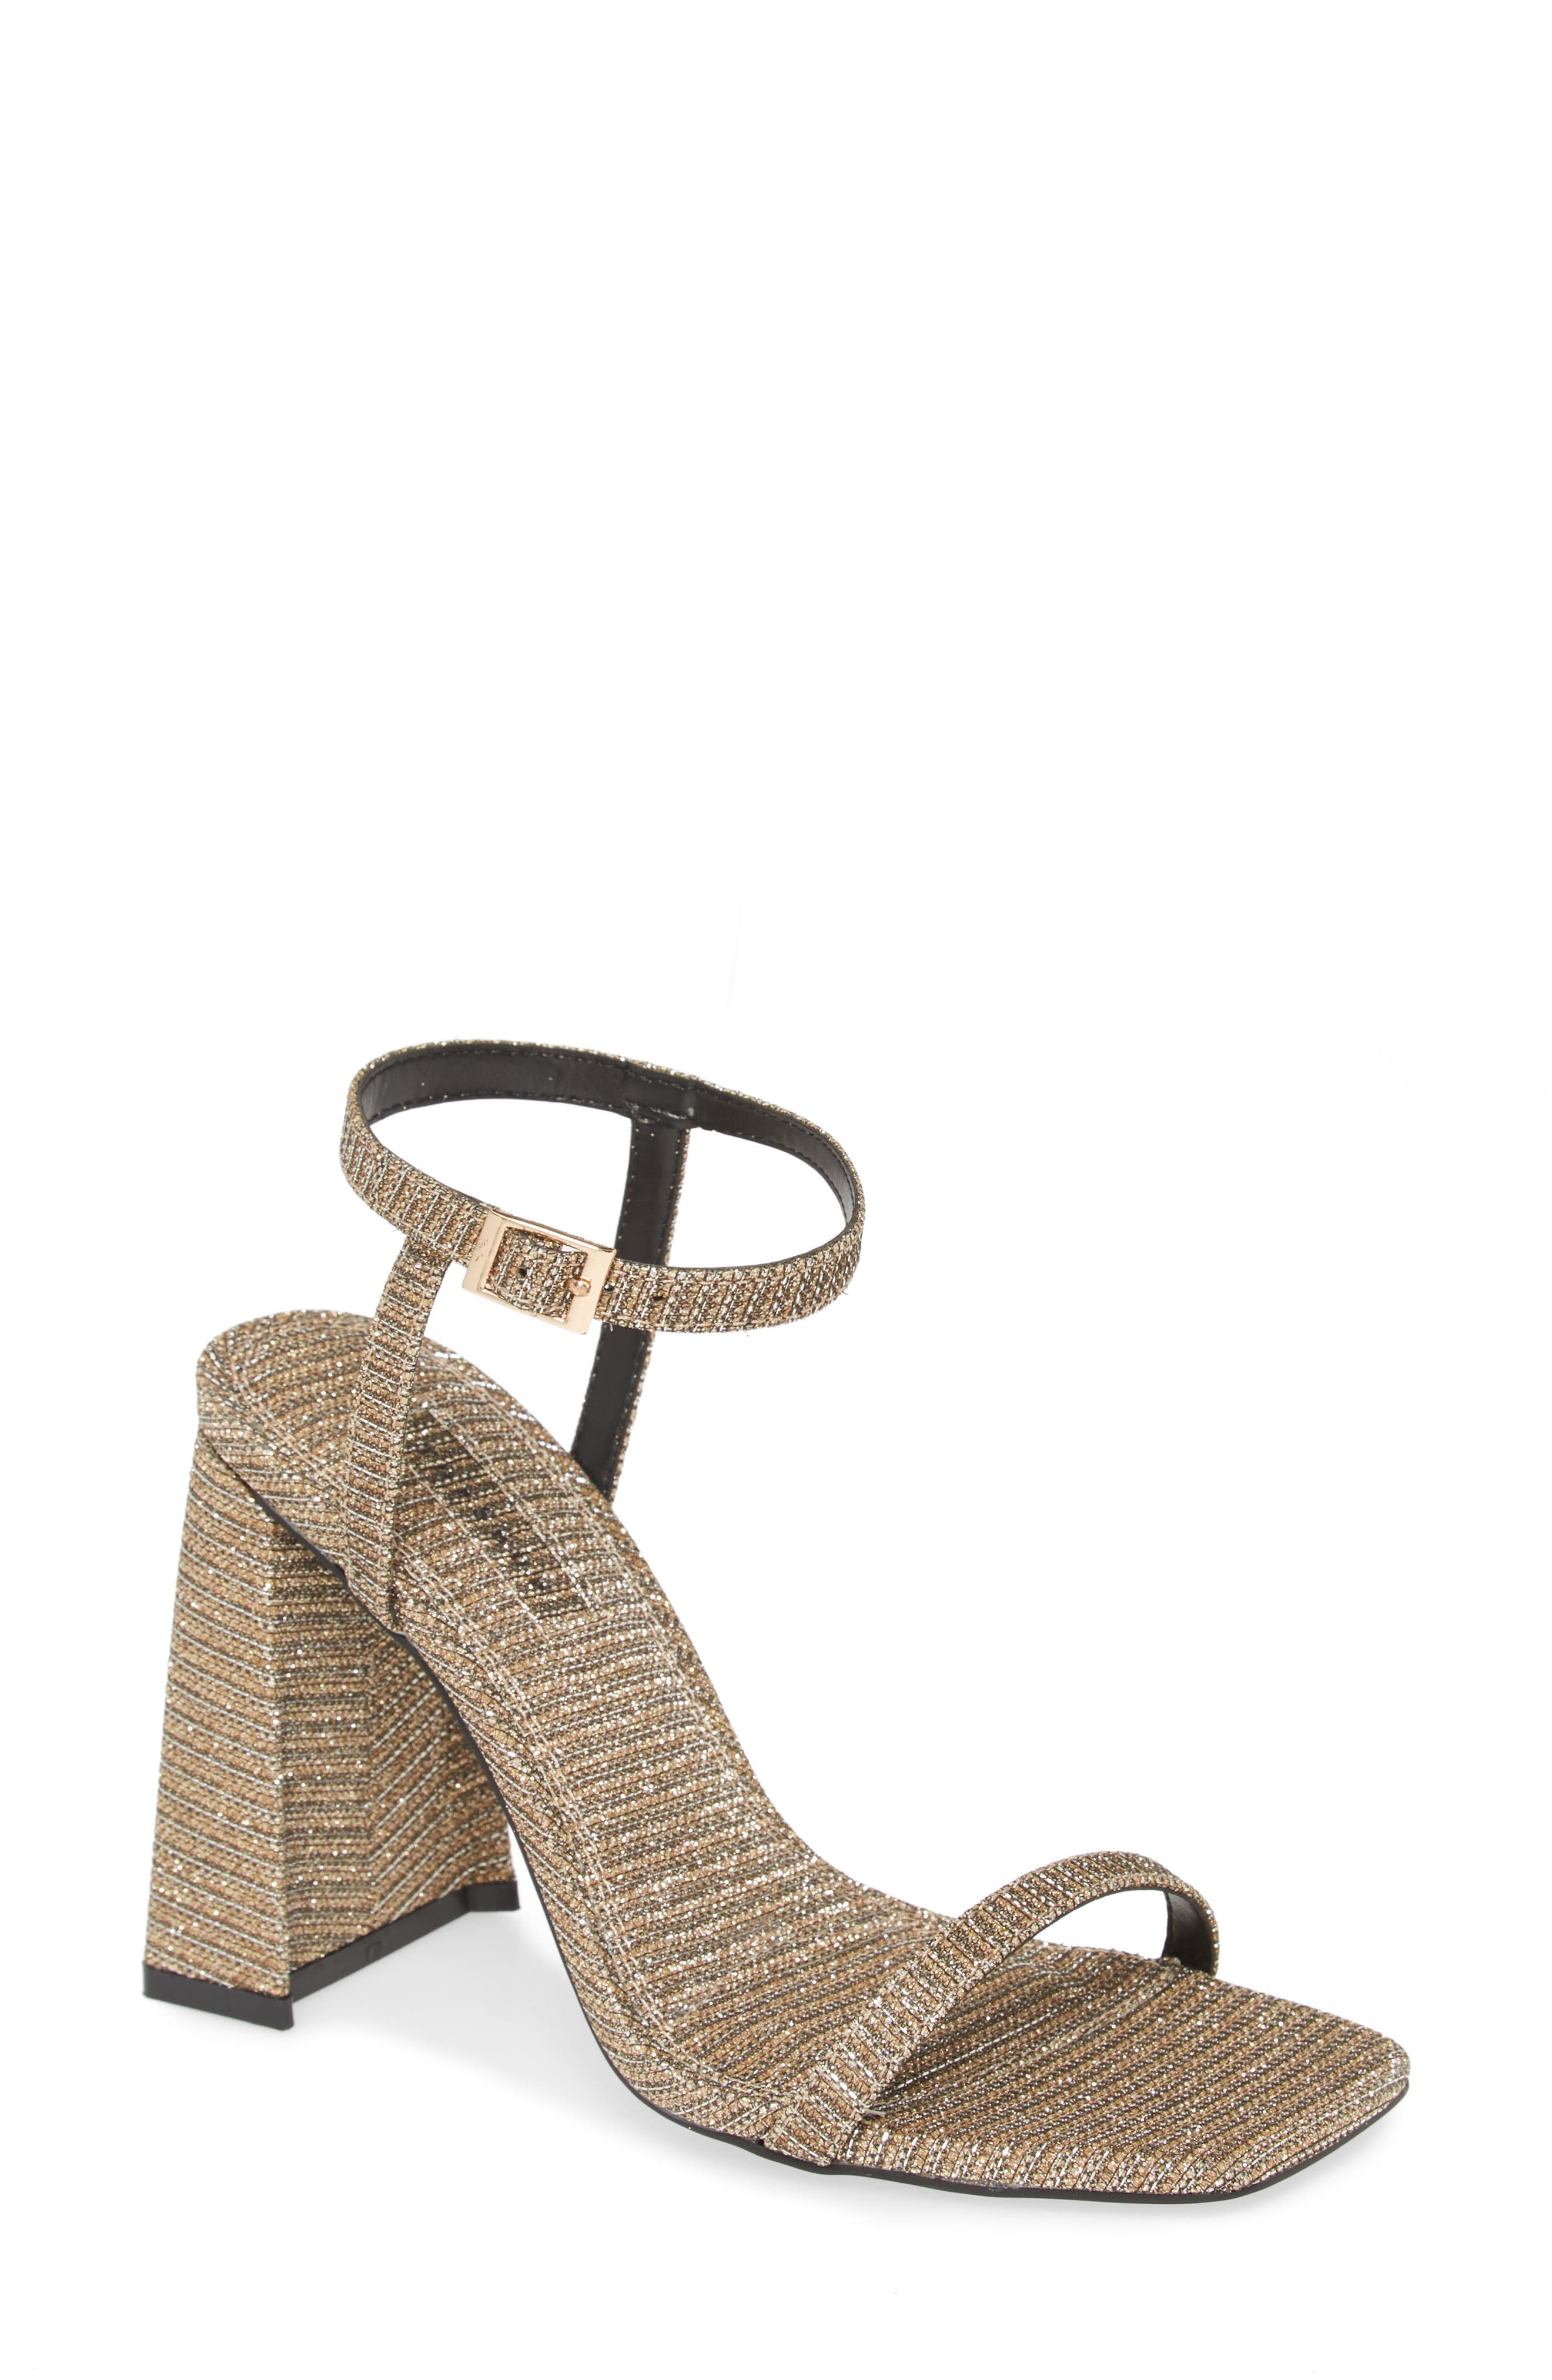 A slender ankle strap provides a perfect counterbalance for the bold, flared heel of this retro-chic sandal. Style Name: Topshop Rocco Sandal (Women). Style Number: 5984459 1. Available in stores.